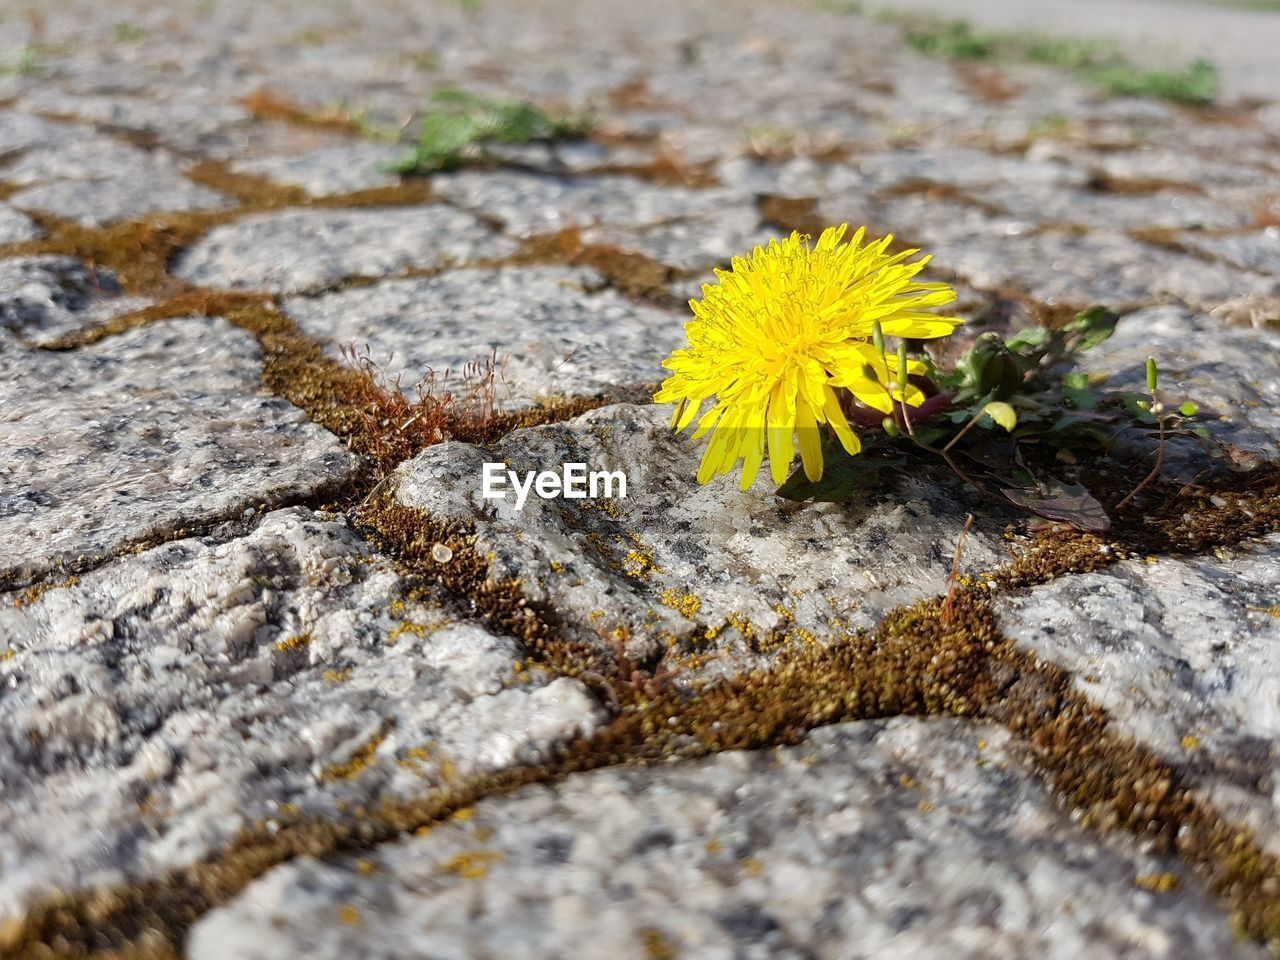 flower, yellow, flowering plant, plant, fragility, freshness, close-up, vulnerability, no people, selective focus, beauty in nature, inflorescence, day, nature, growth, flower head, petal, solid, textured, outdoors, lichen